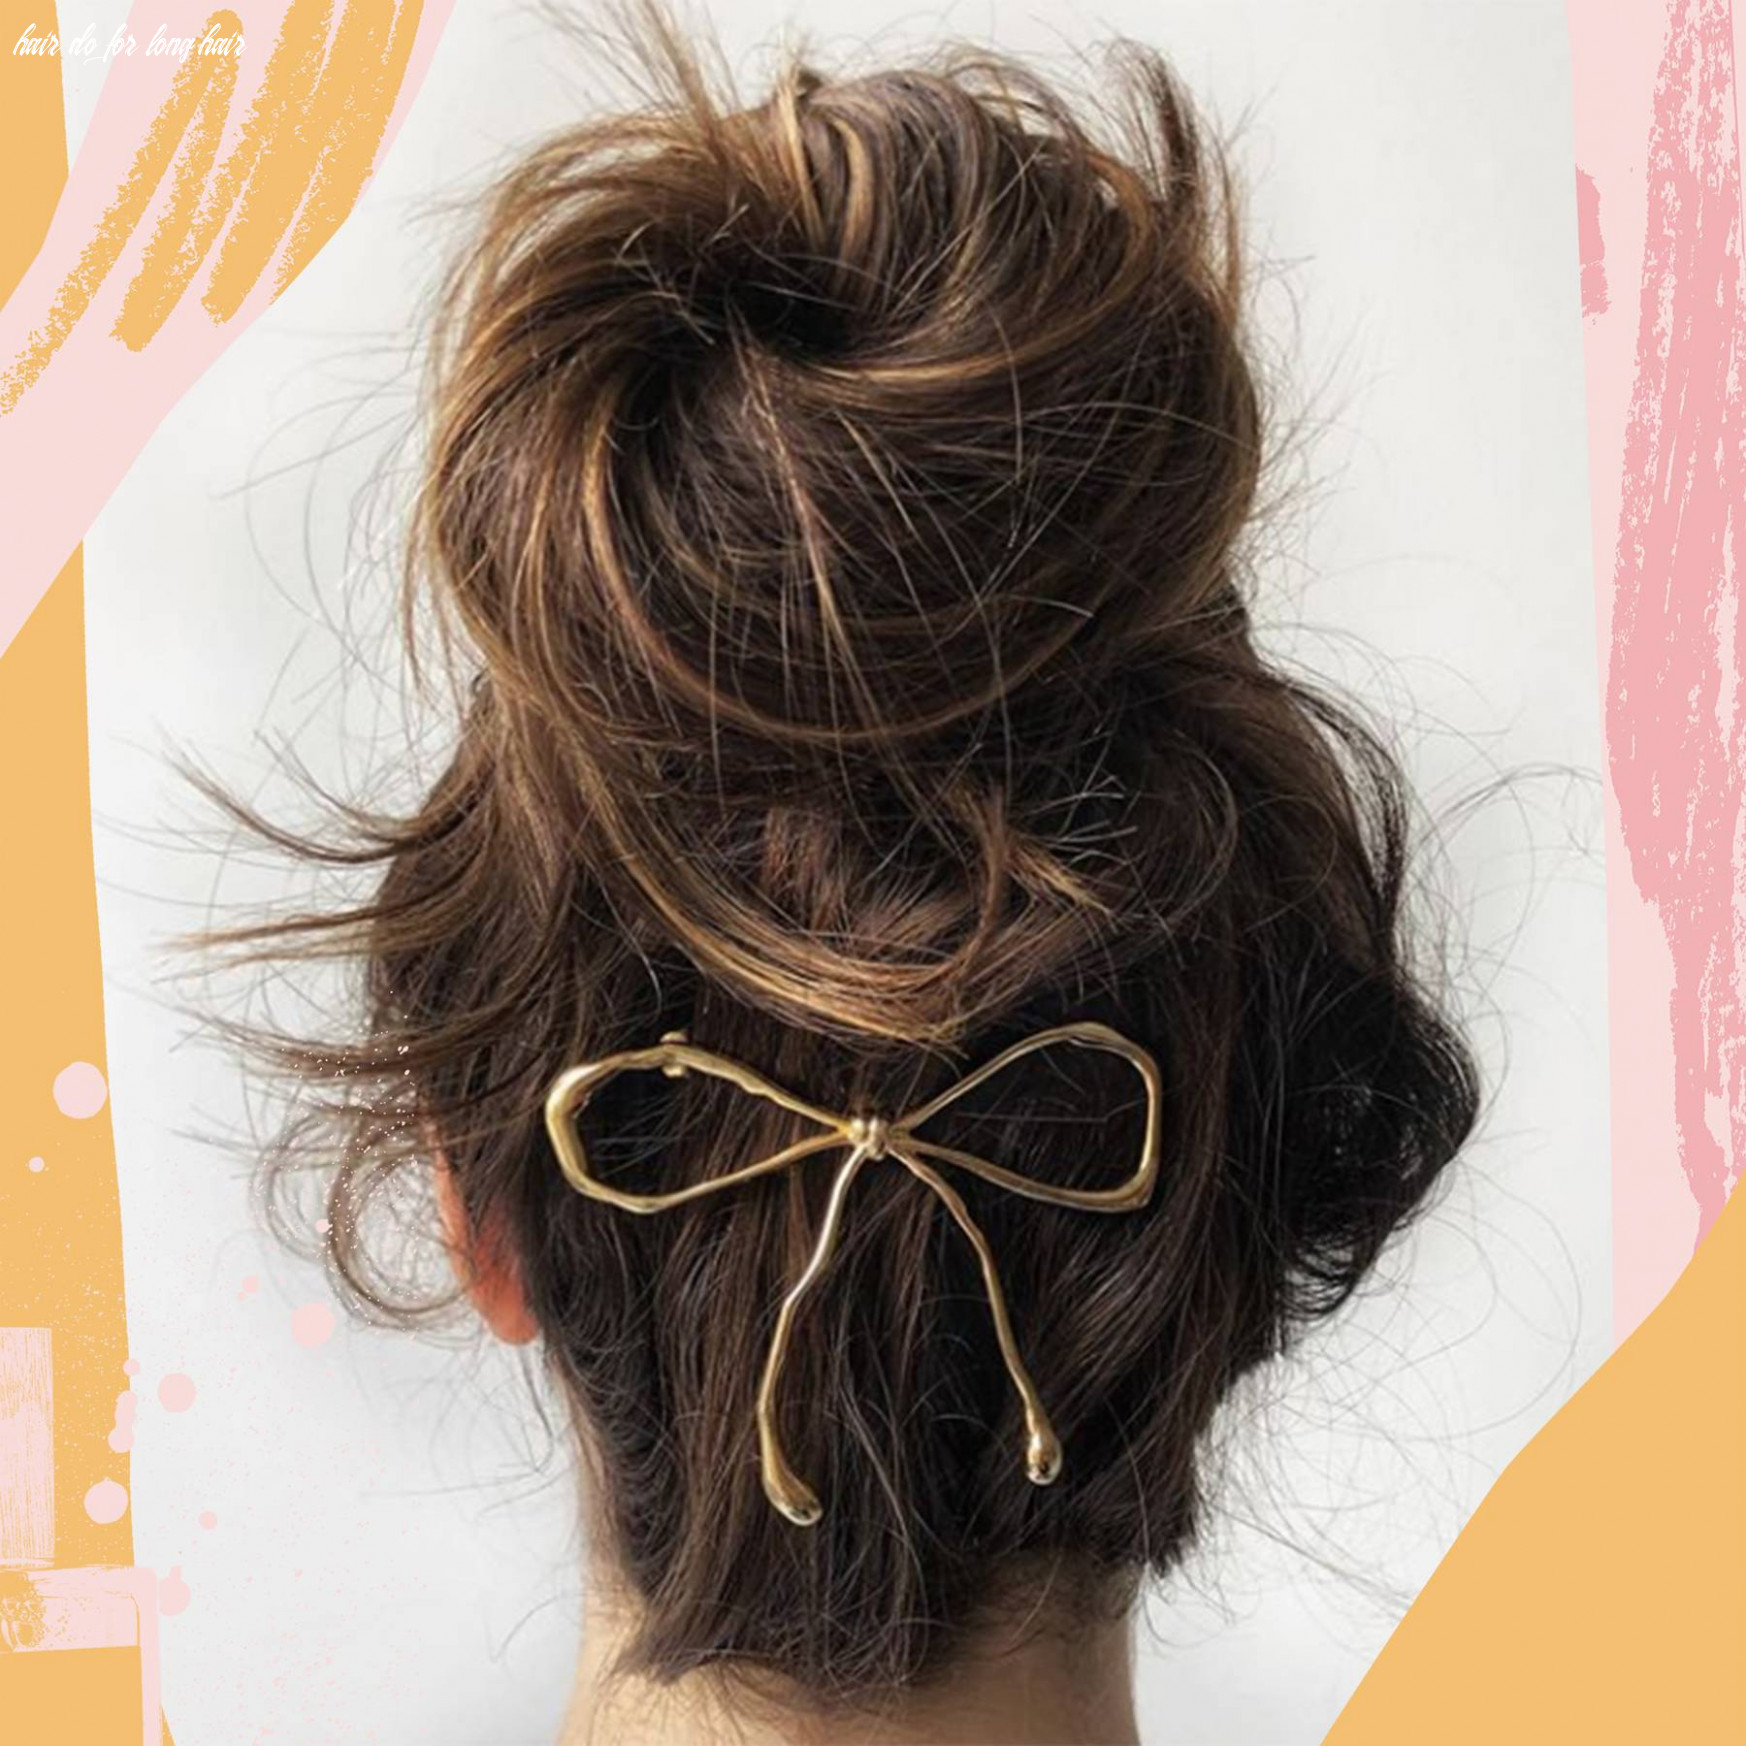 Hairstyles for long hair: long hair trends, ideas & tips 9